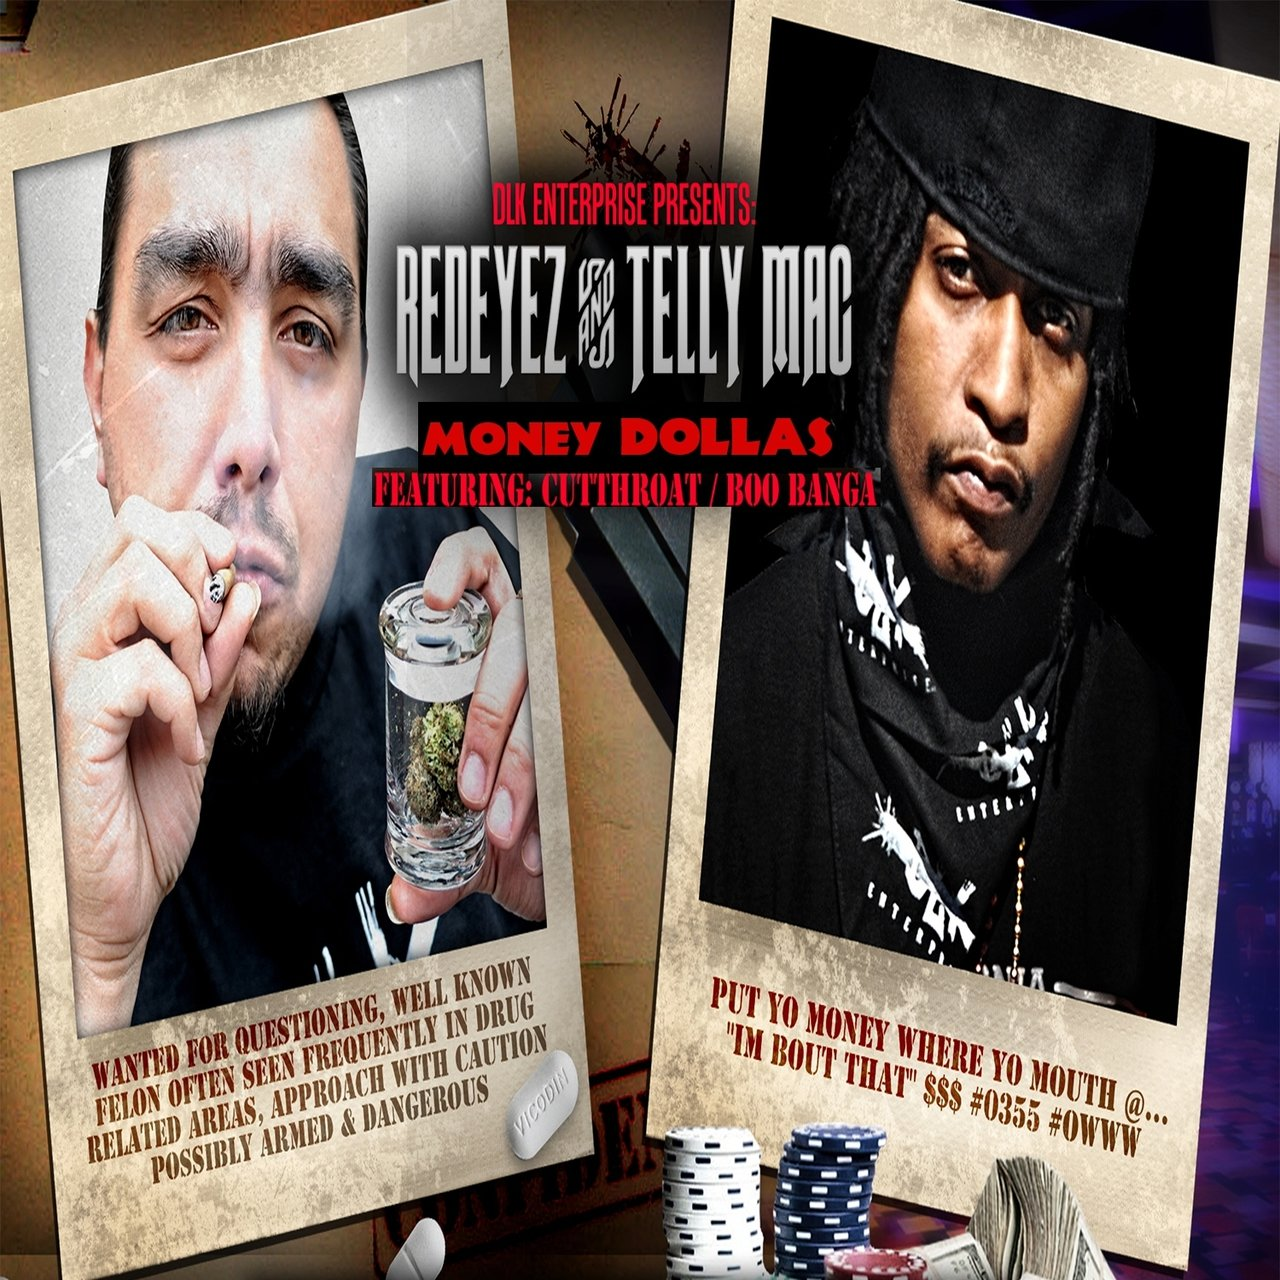 Money Dollas (feat. Telly Mac, Cutthroat & Boo Banga) - Single